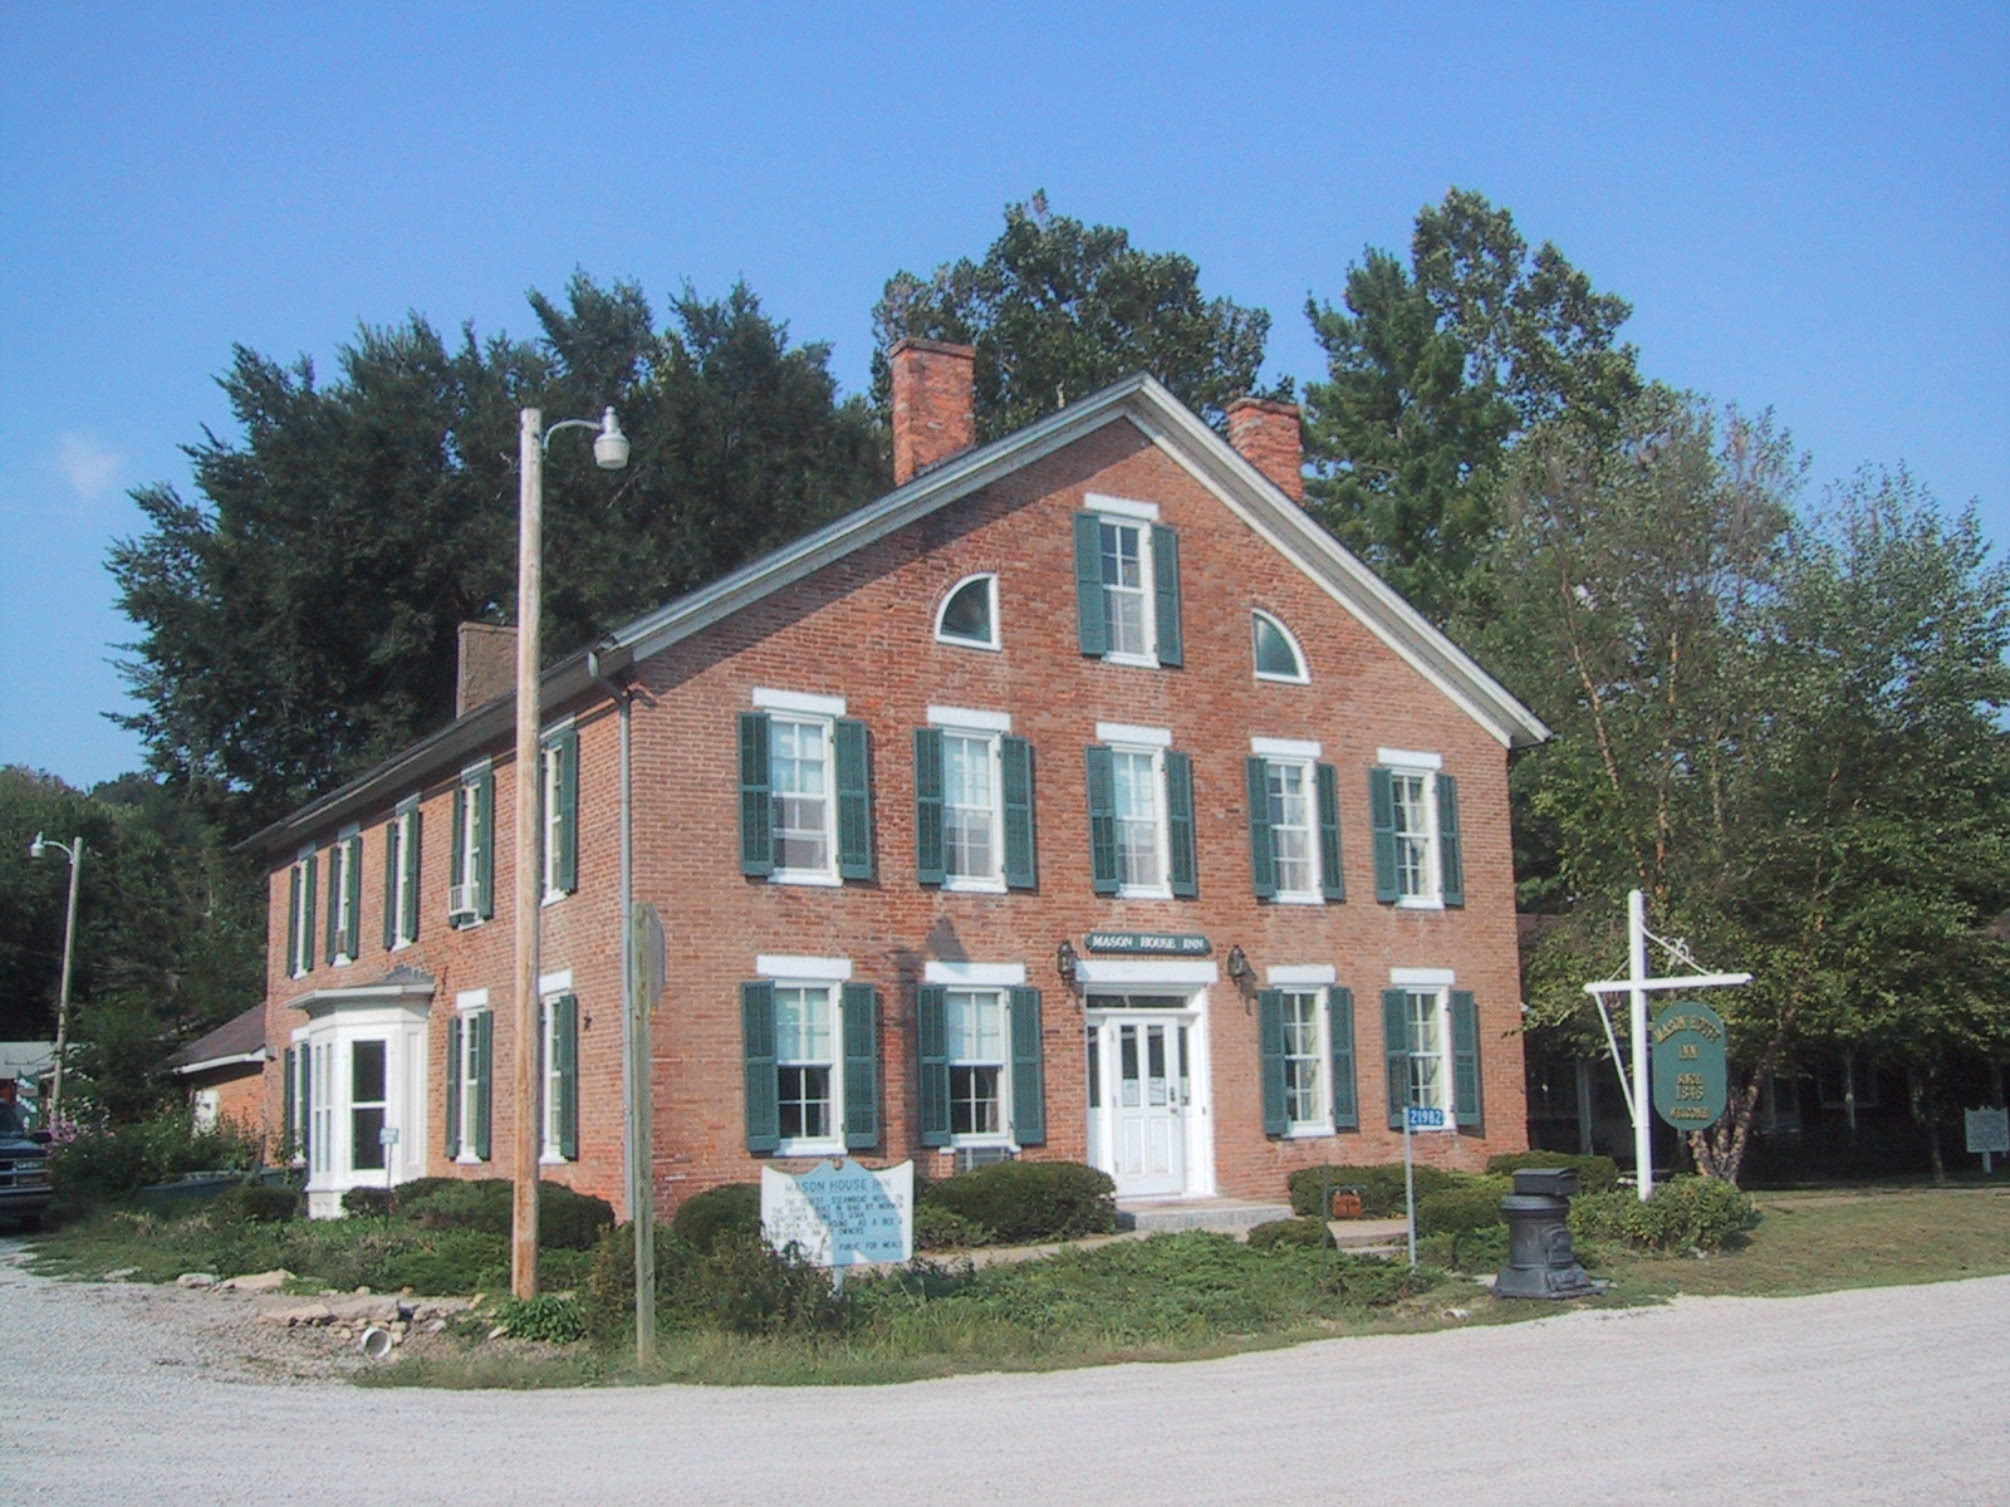 A large brick building at Mason House Inn & Caboose Cottage.